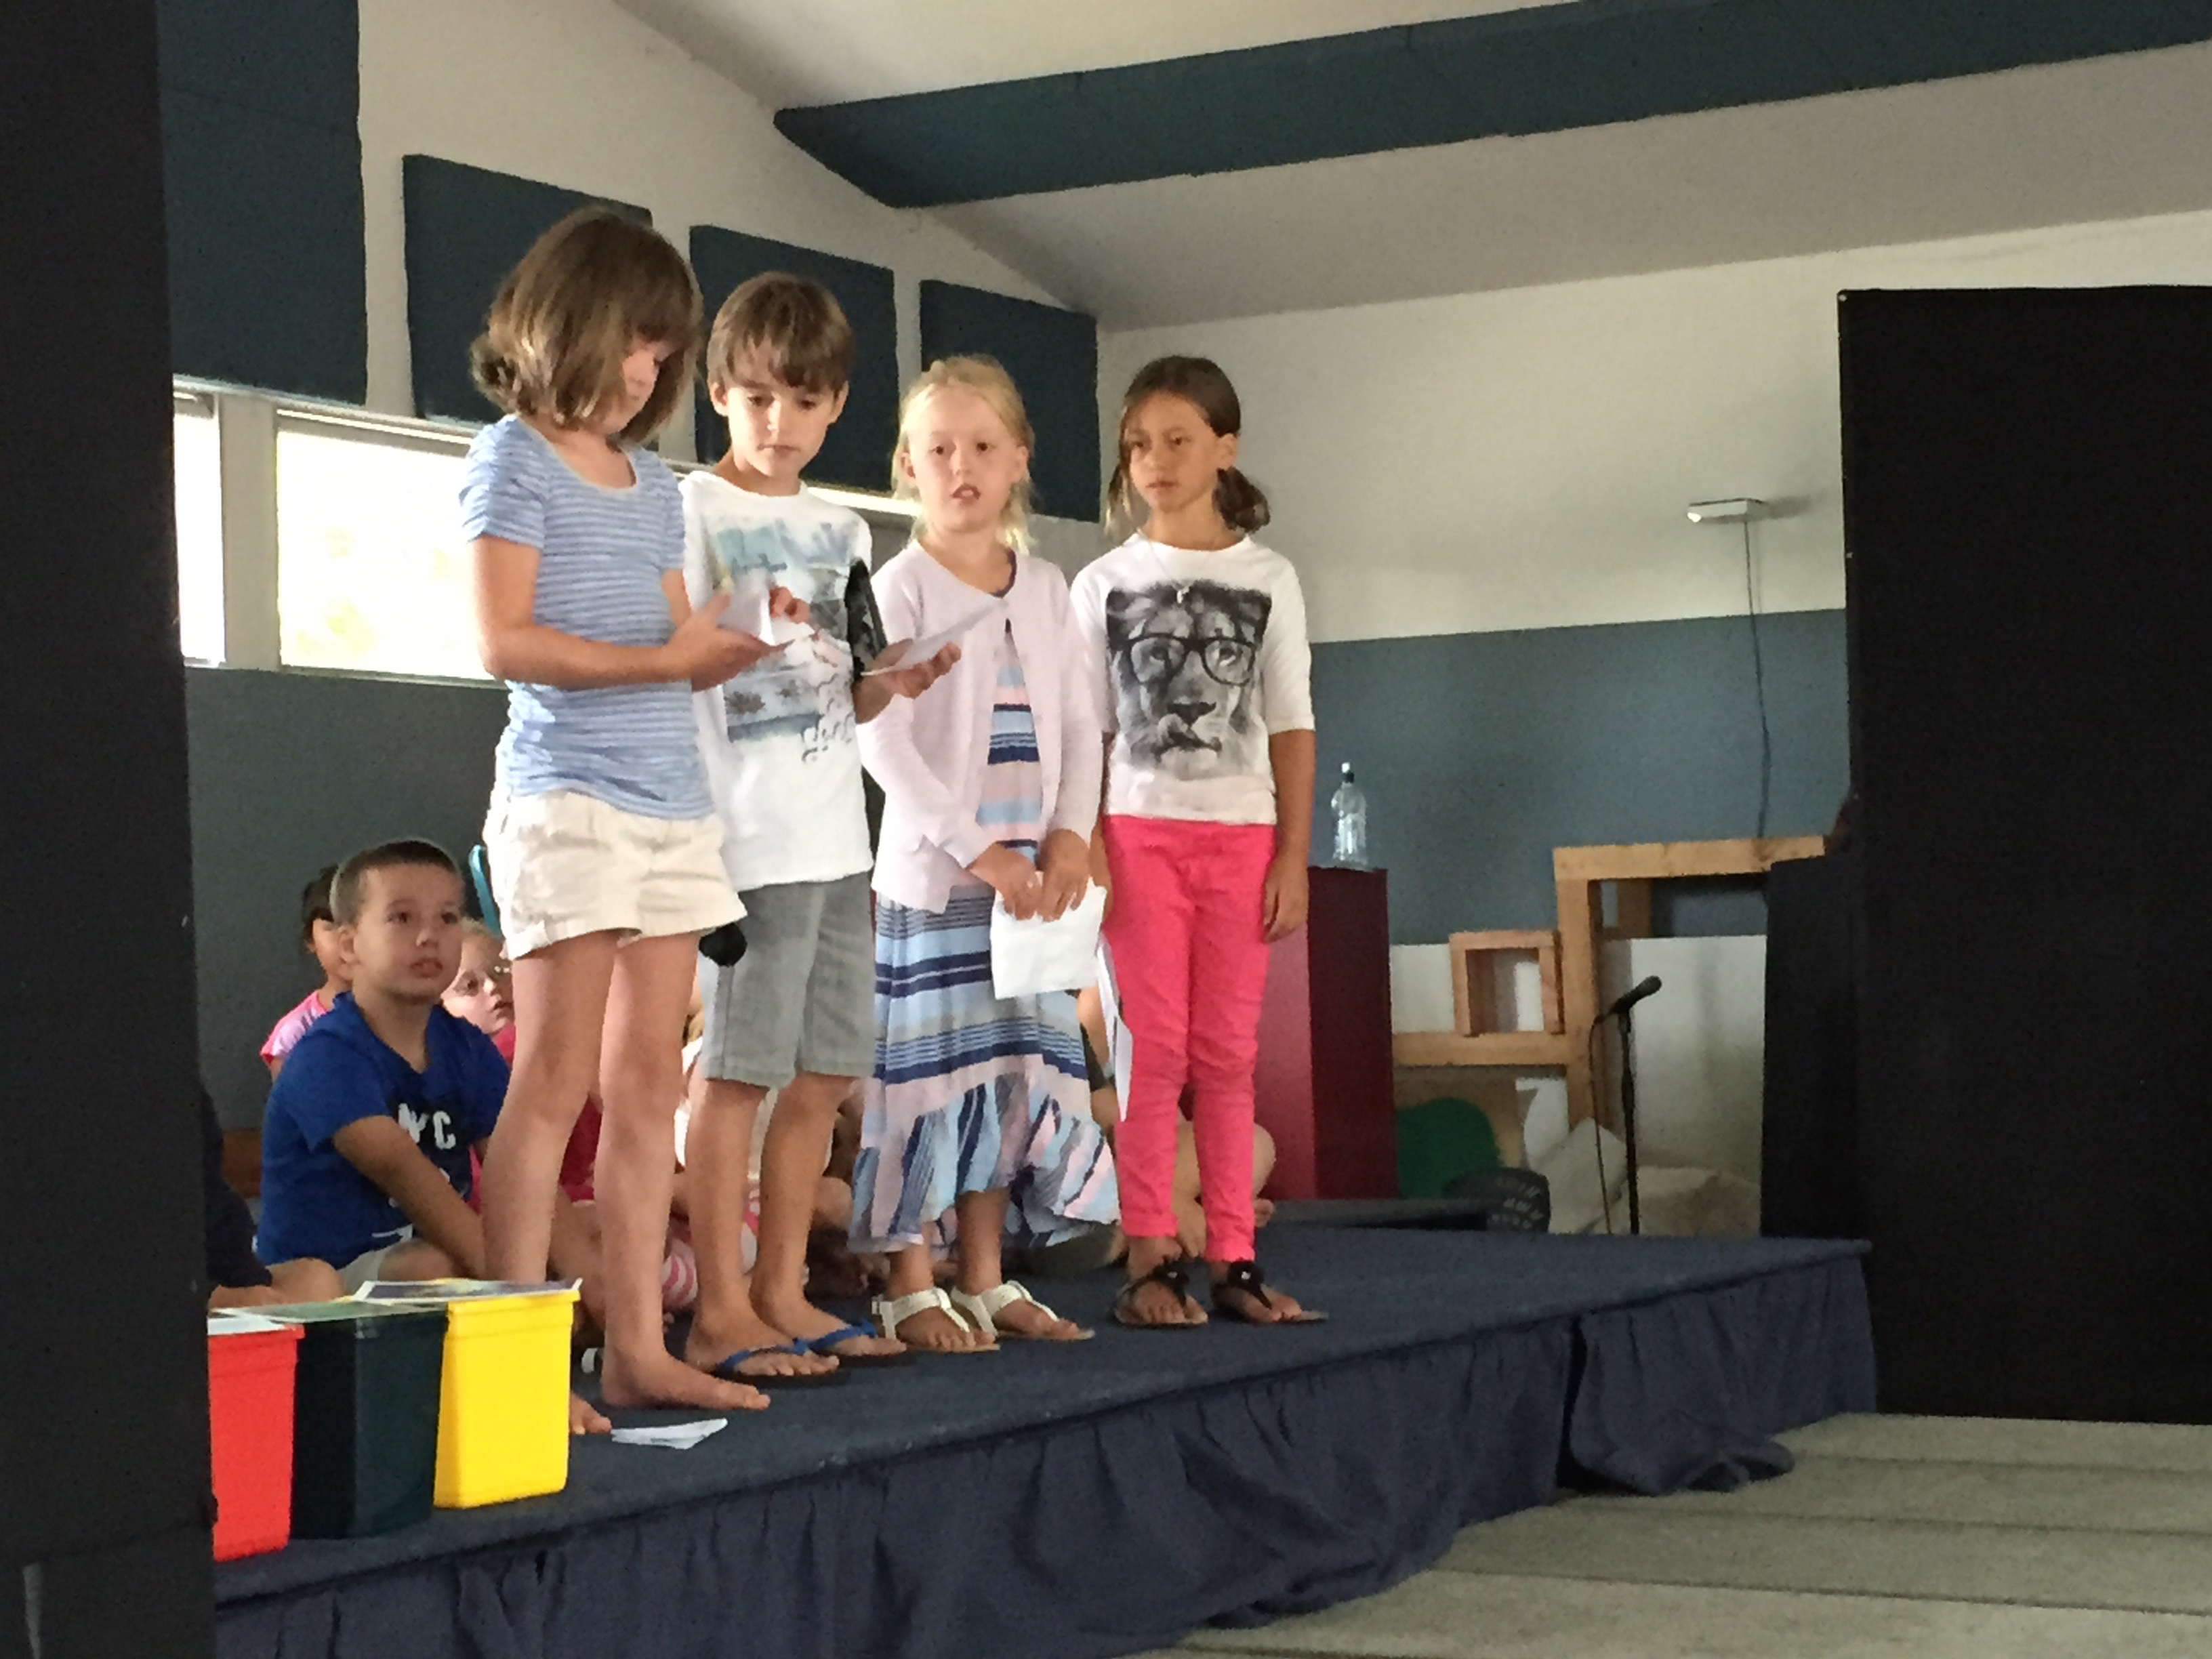 Room 7 kids presenting their reflections in the Pit